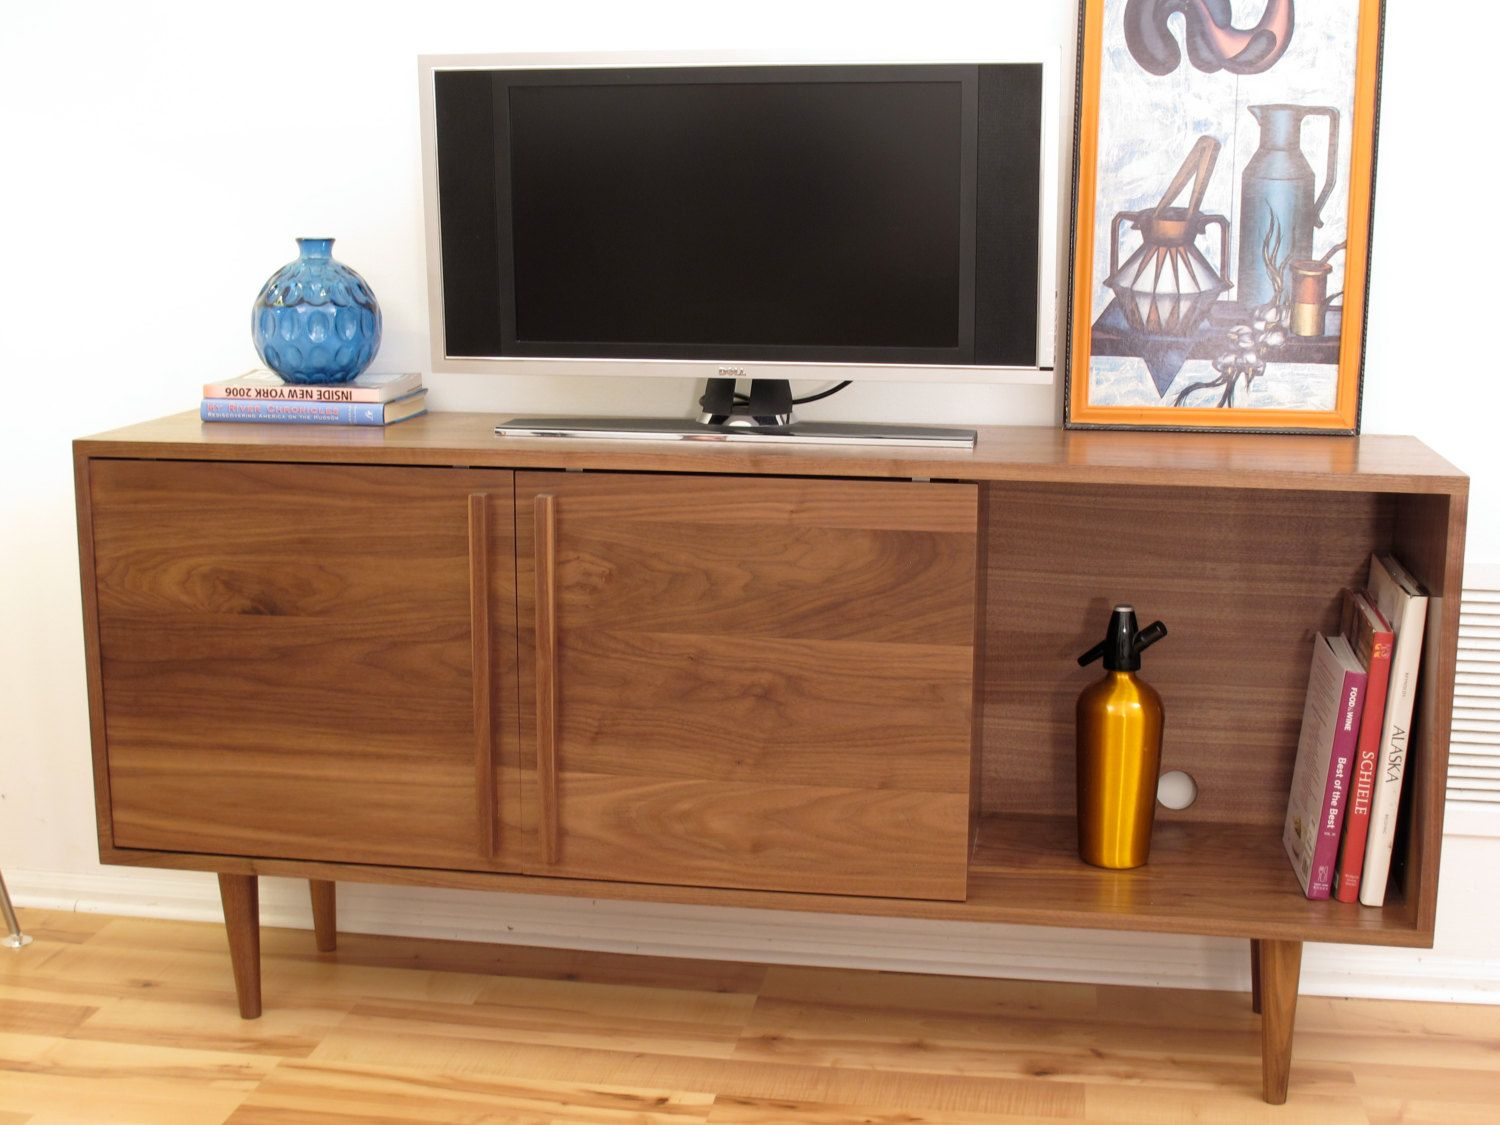 4770429bd3a mid century modern tv stand - Google Search